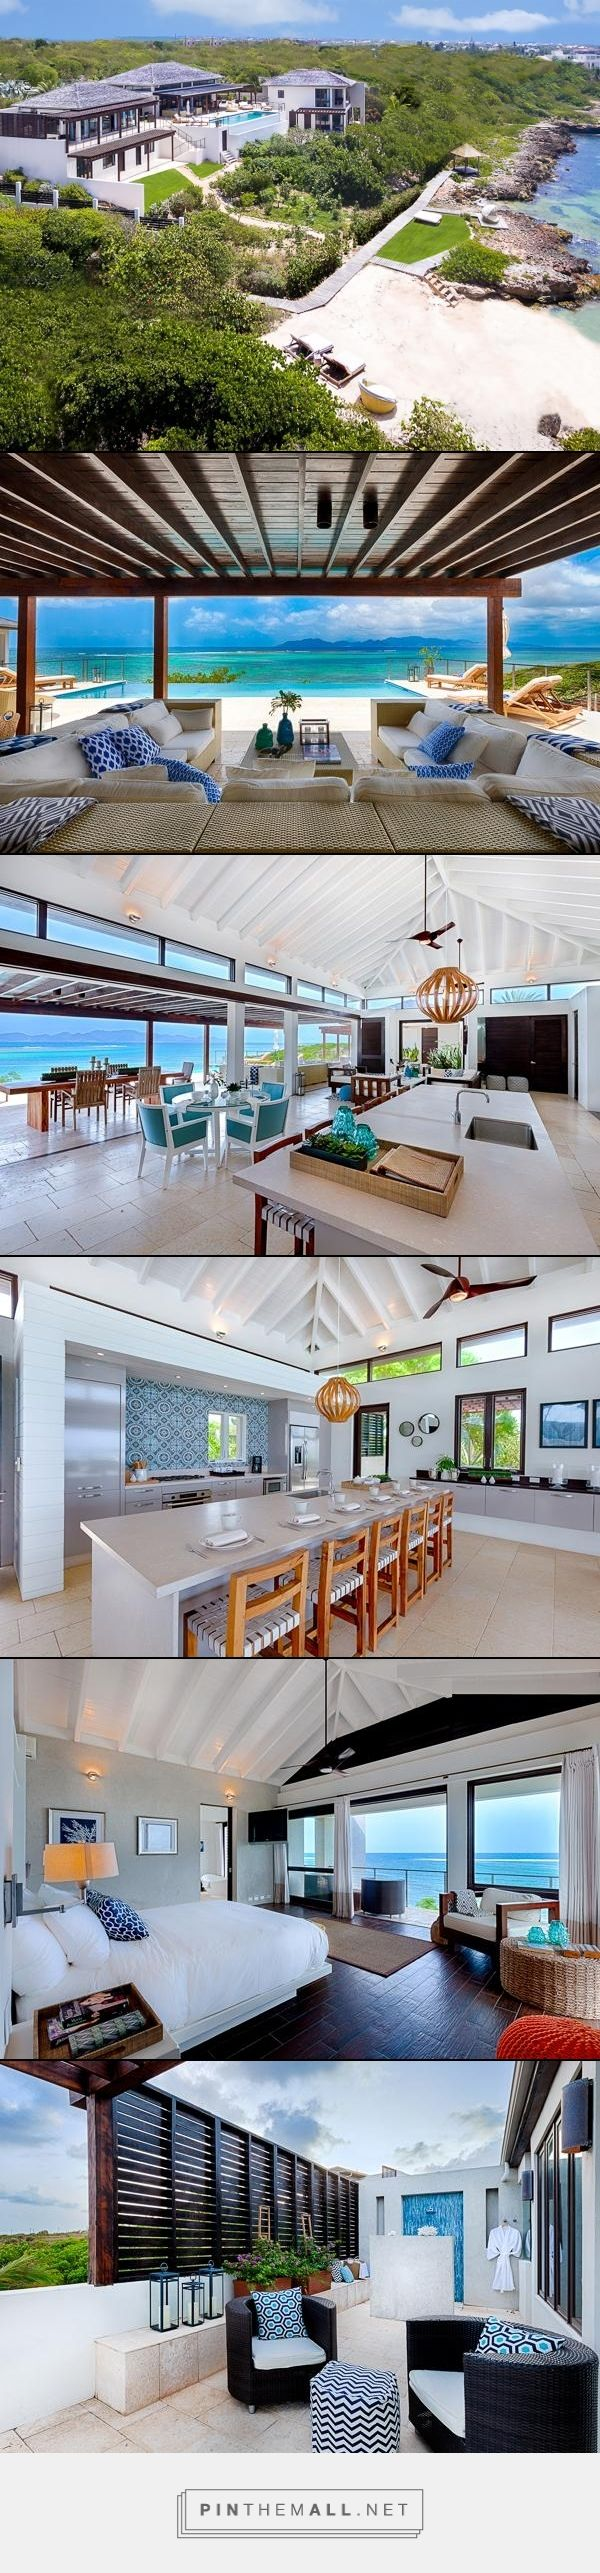 Villa Triton at Kamique- Little Harbour, Anguilla